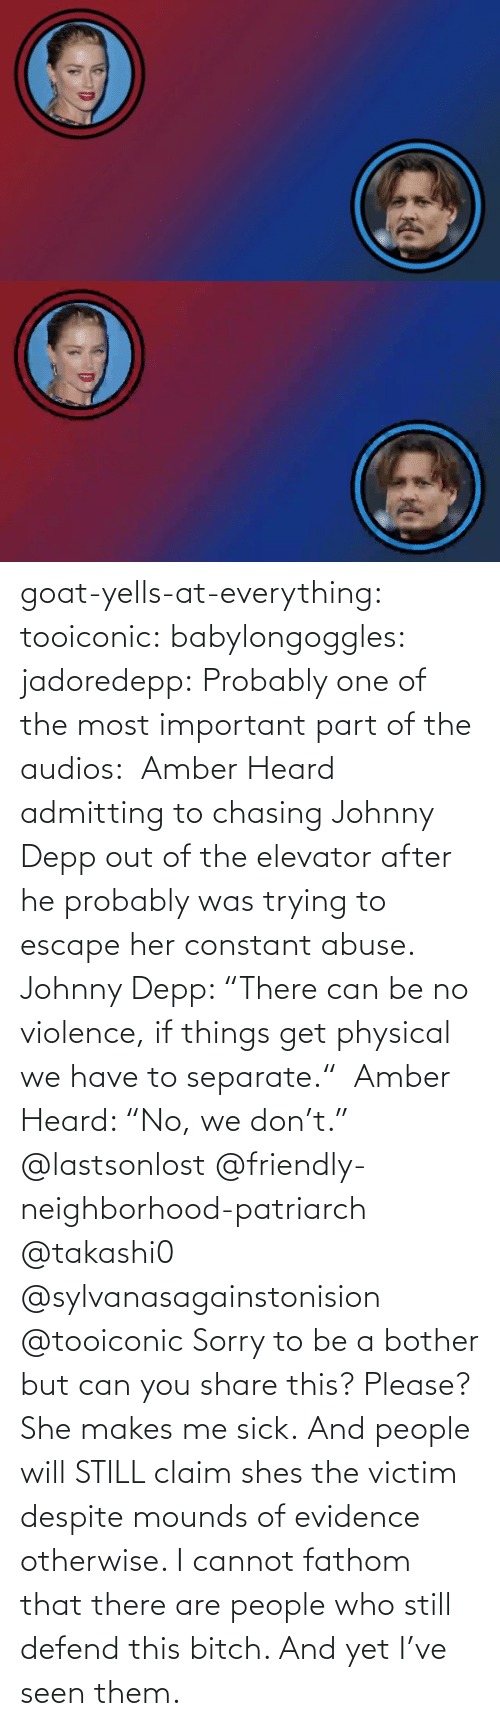 "shes: goat-yells-at-everything:  tooiconic:  babylongoggles:  jadoredepp:  Probably one of the most important part of the audios:  Amber Heard admitting to chasing Johnny Depp out of the elevator after he probably was trying to escape her constant abuse.  Johnny Depp: ""There can be no violence, if things get physical we have to separate.""  Amber Heard: ""No, we don't.""  @lastsonlost @friendly-neighborhood-patriarch @takashi0 @sylvanasagainstonision @tooiconic Sorry to be a bother but can you share this? Please?   She makes me sick.   And people will STILL claim shes the victim despite mounds of evidence otherwise.    I cannot fathom that there are people who still defend this bitch. And yet I've seen them."